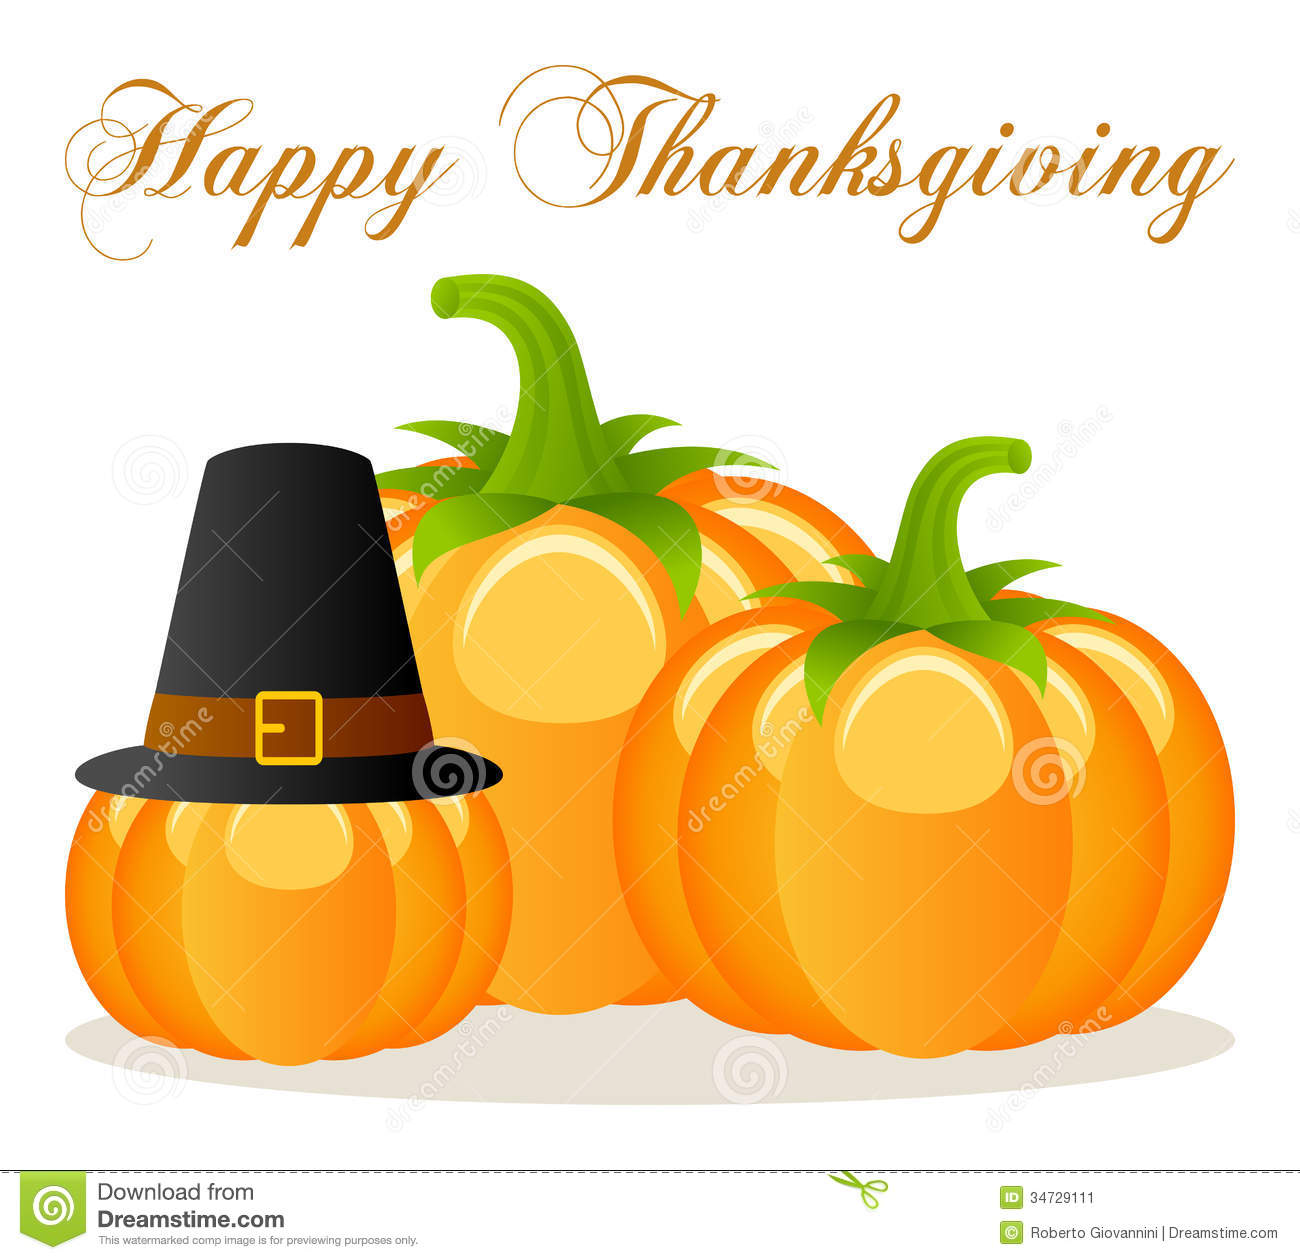 Happy Thanksgiving pumpkins, one with a pilgrim hat